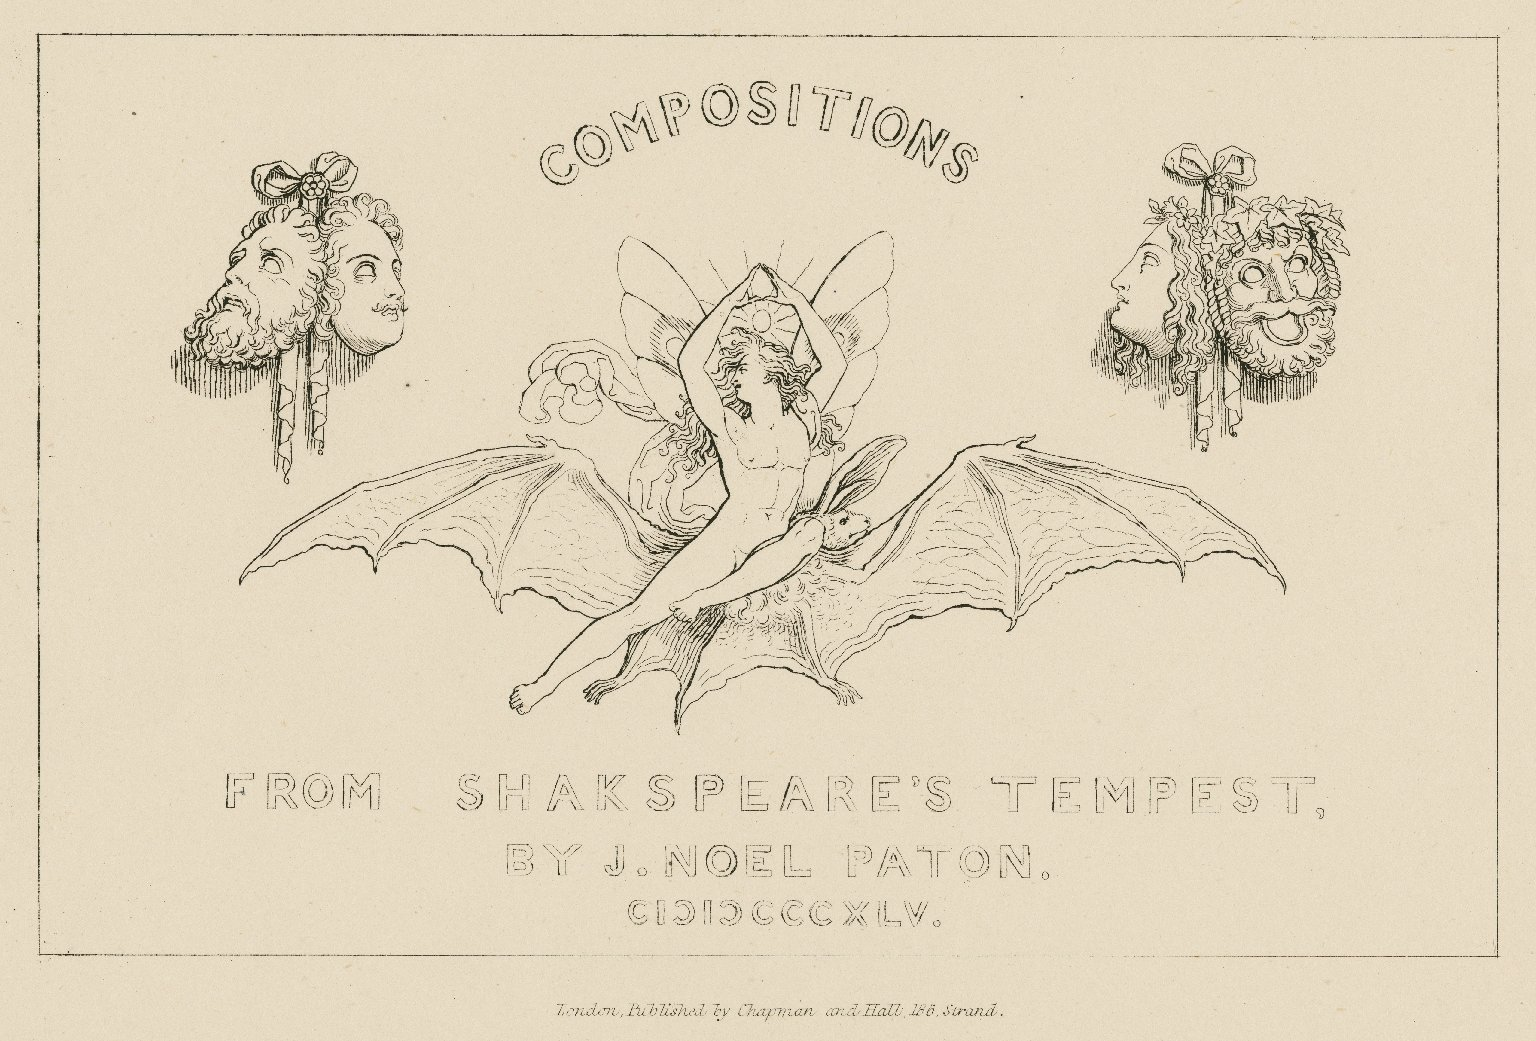 Compositions from Shakespeare's Tempest [a series of engravings] [graphic] / by J. Noel Paton.